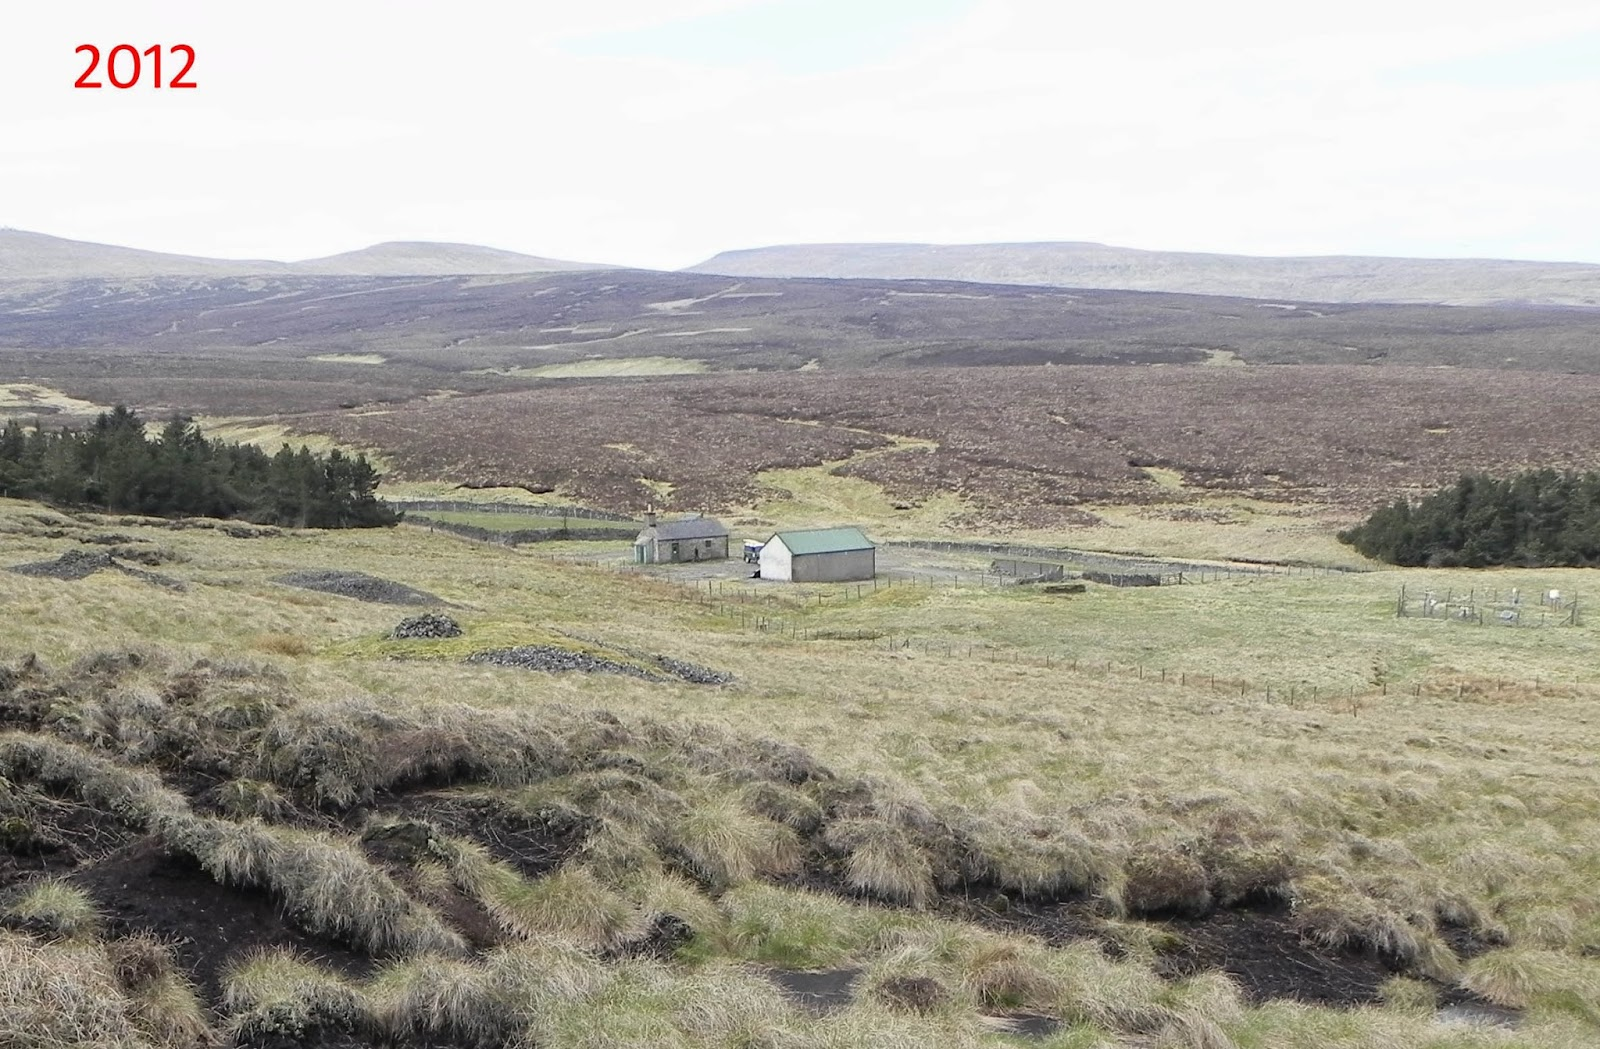 Moor House is England's highest and largest terrestrial National Nature Reserve. The site is part of the Environmental Change Network, coordinated by CEH.